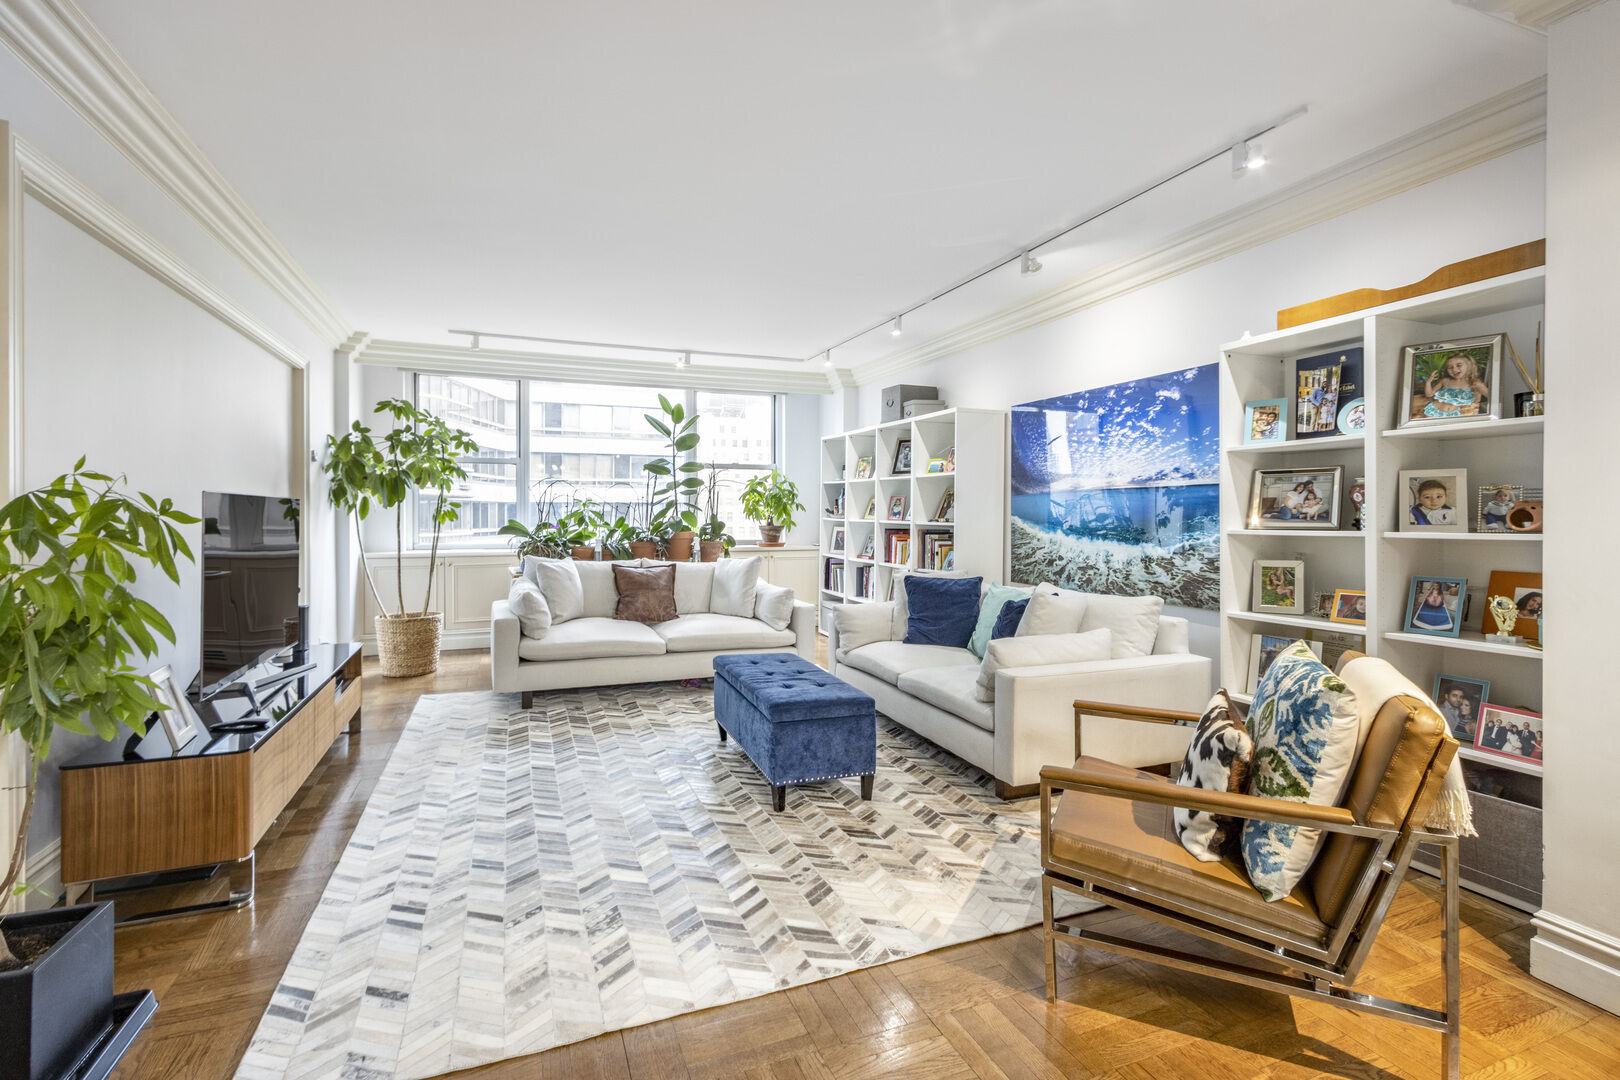 Apartment for sale at 175 East 62nd Street, Apt 9-D